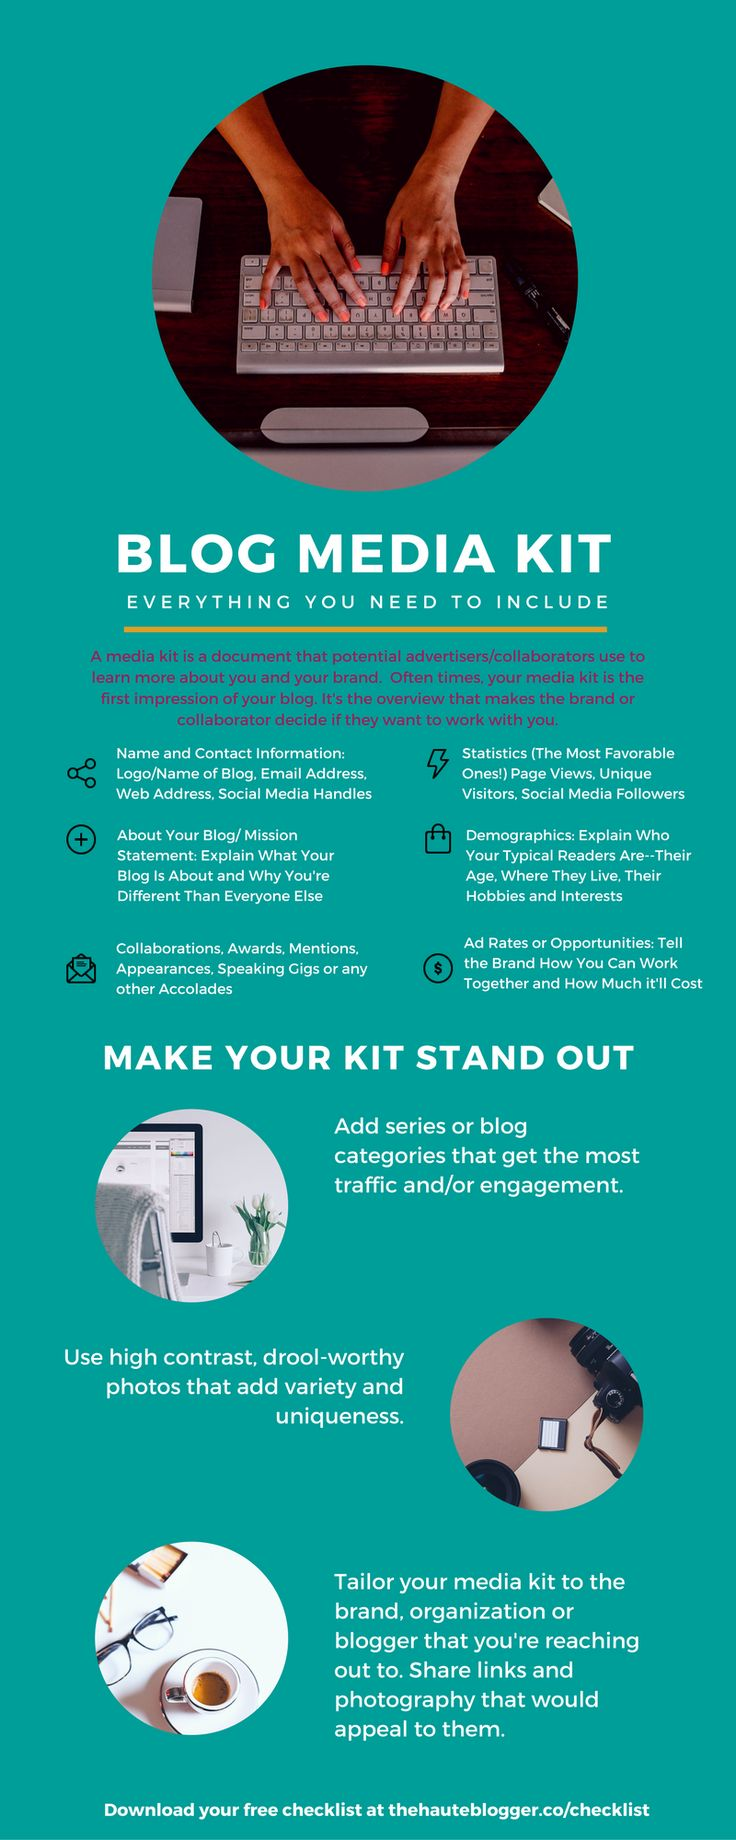 Everything you need for your media kit/press kit. Download a free printable checklist here: www.thehauteblogger.co/checklist